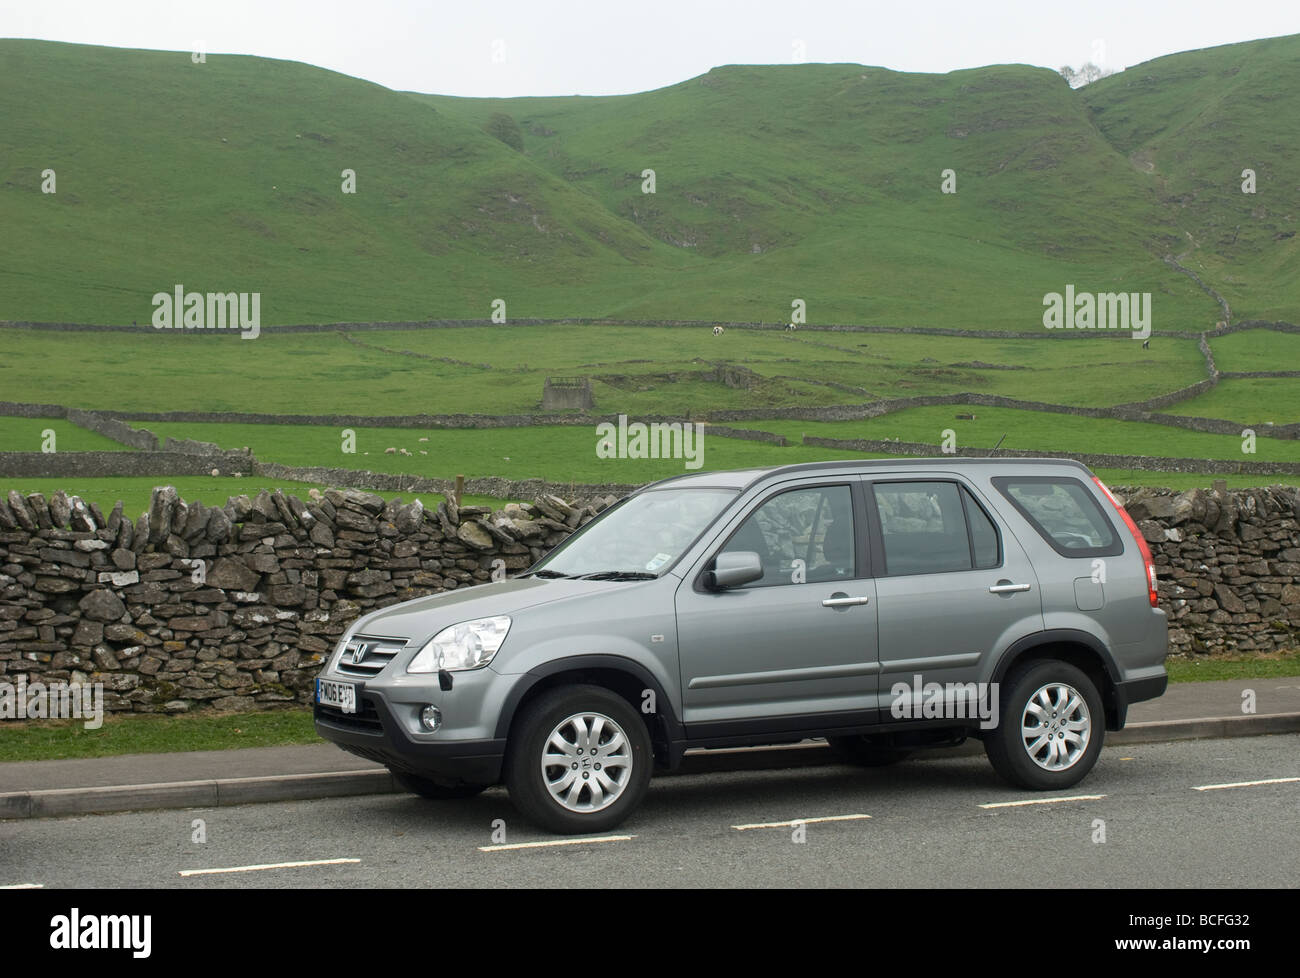 Side view of a Honda CRV 4x4 car parked at the side of the road in rural Derbyshire England - Stock Image